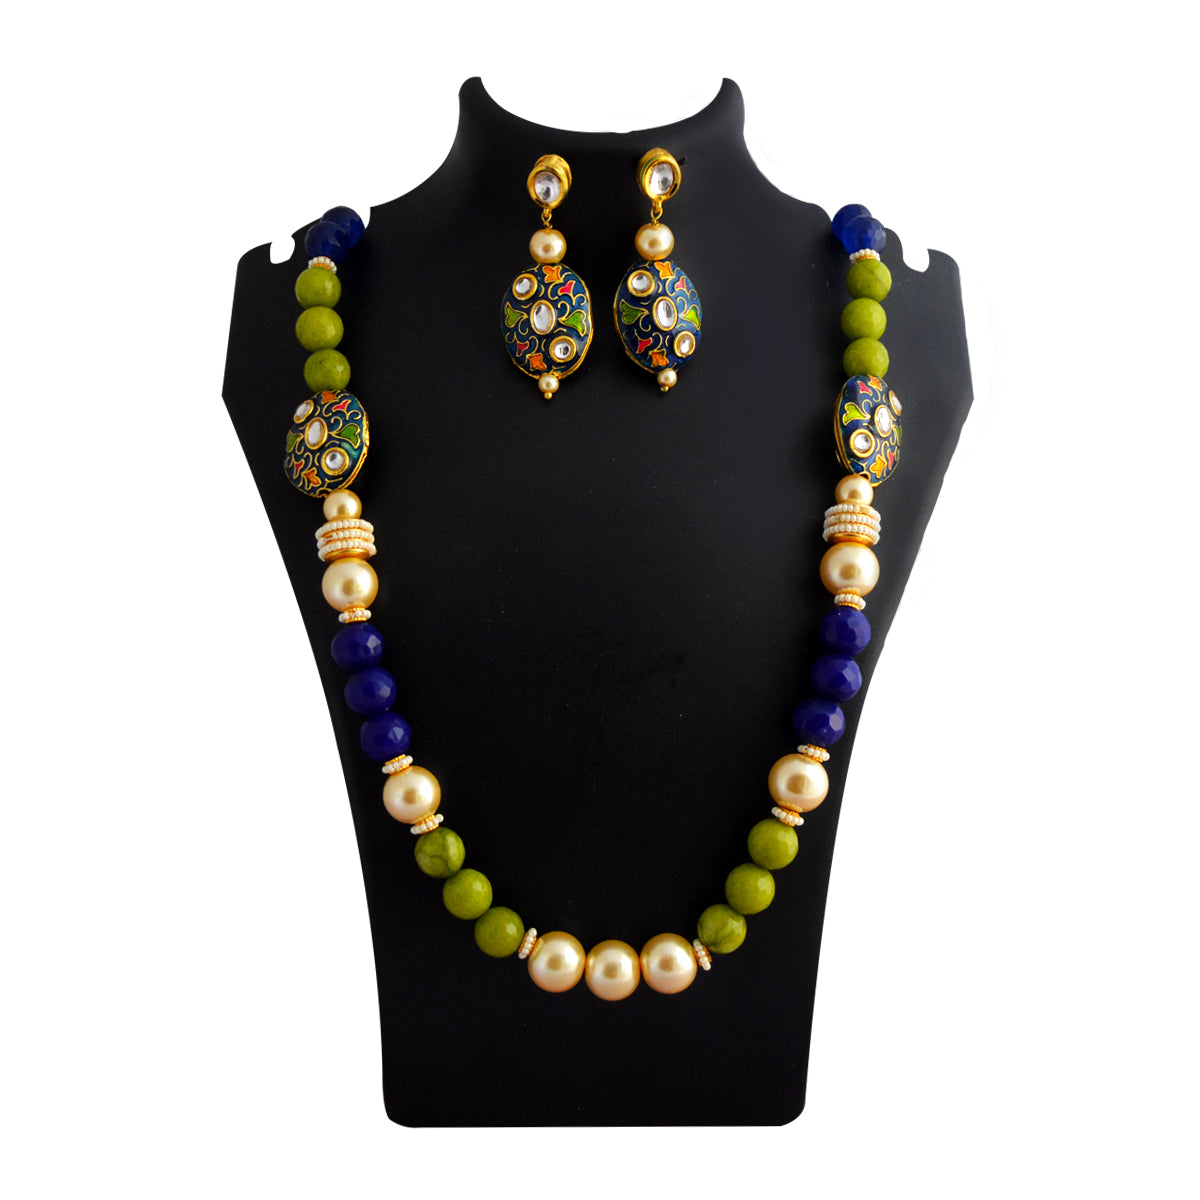 MK Jewellers Peacock And Blues Color Meenakari Painting With Kundan Stone And Pearl Necklace Set-MK Jewellers-Necklace